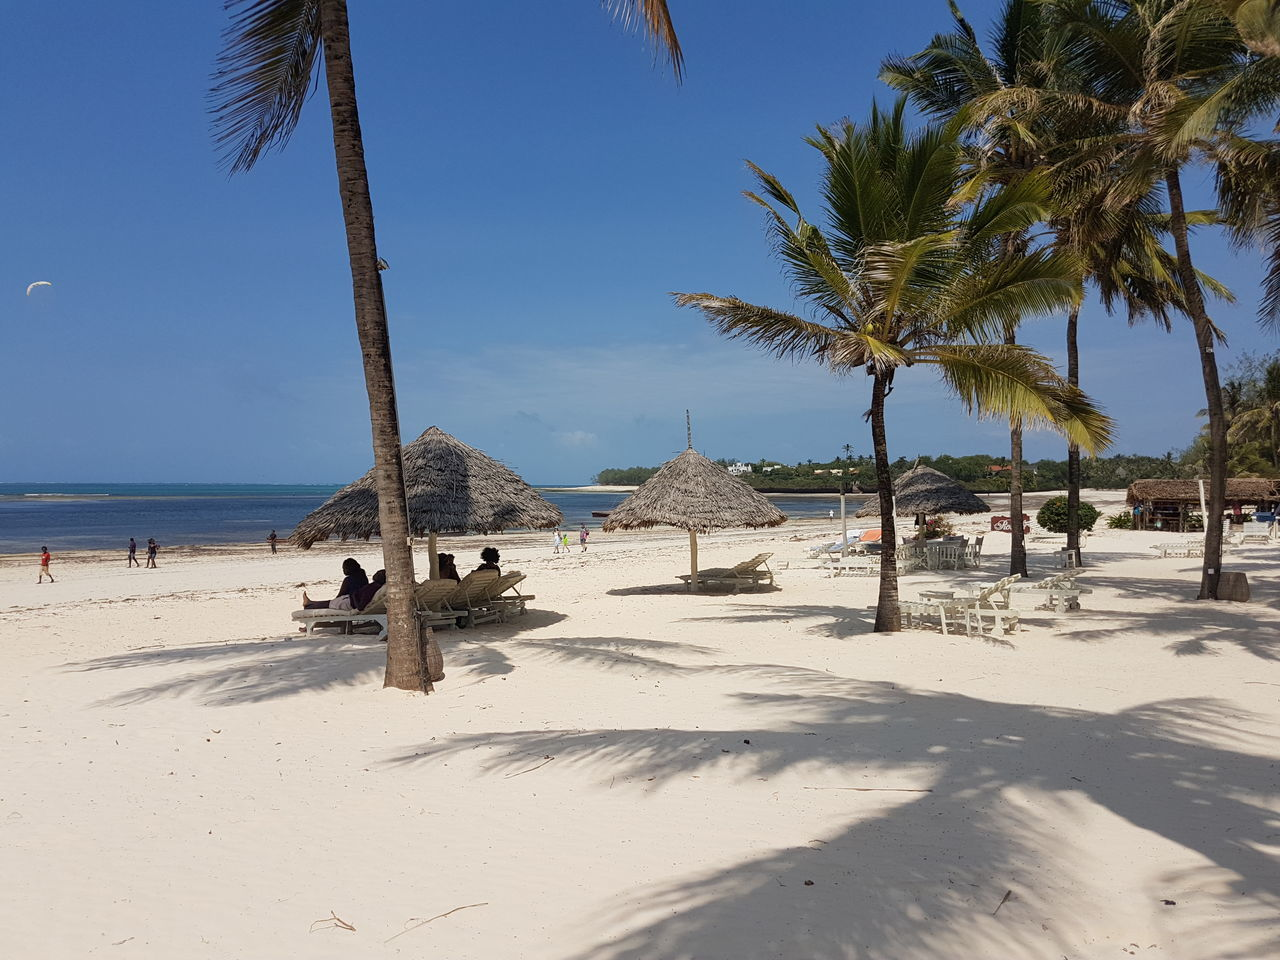 Malindi beach white sands Sand Beach Sea Sunny Tree Sky Sand Dune Shadow Tranquility Nature Palm Tree Clear Sky Outdoors Day Landscape Desert Summer No People Vacations Scenics